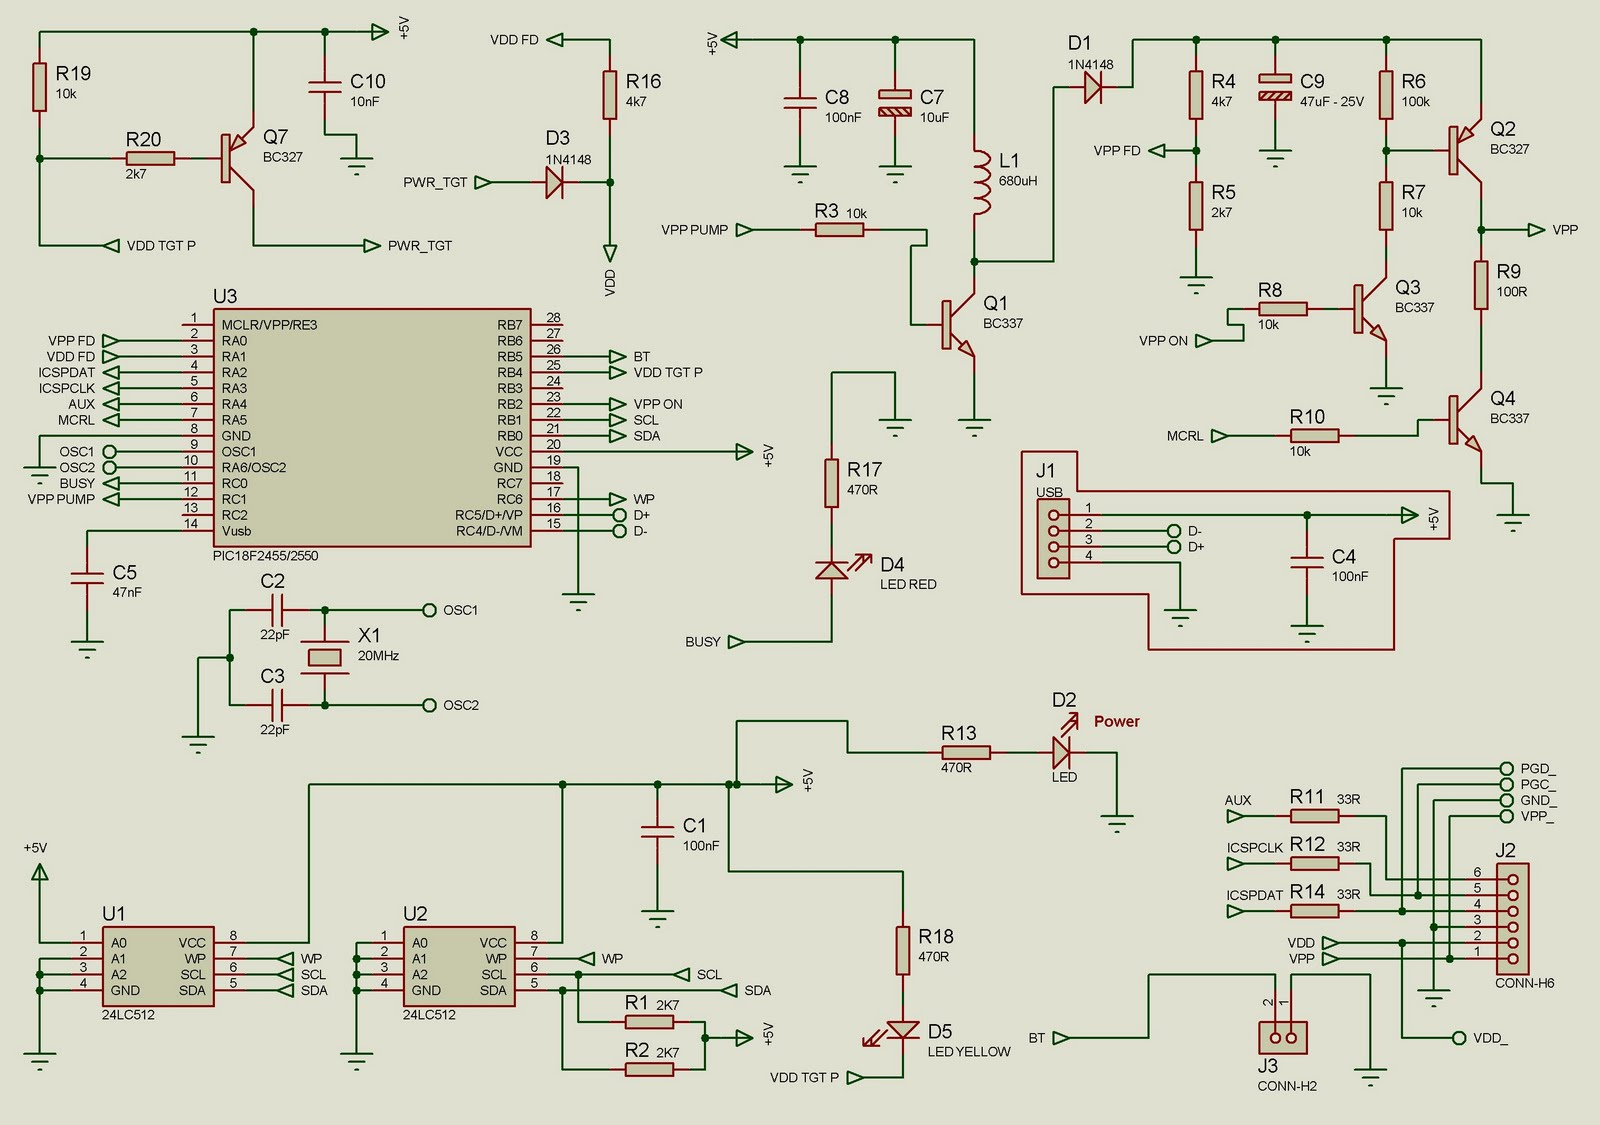 Pickit 2 Programmer Circuit Diagram Clarion Cz100 Wiring For Anything Pickit2